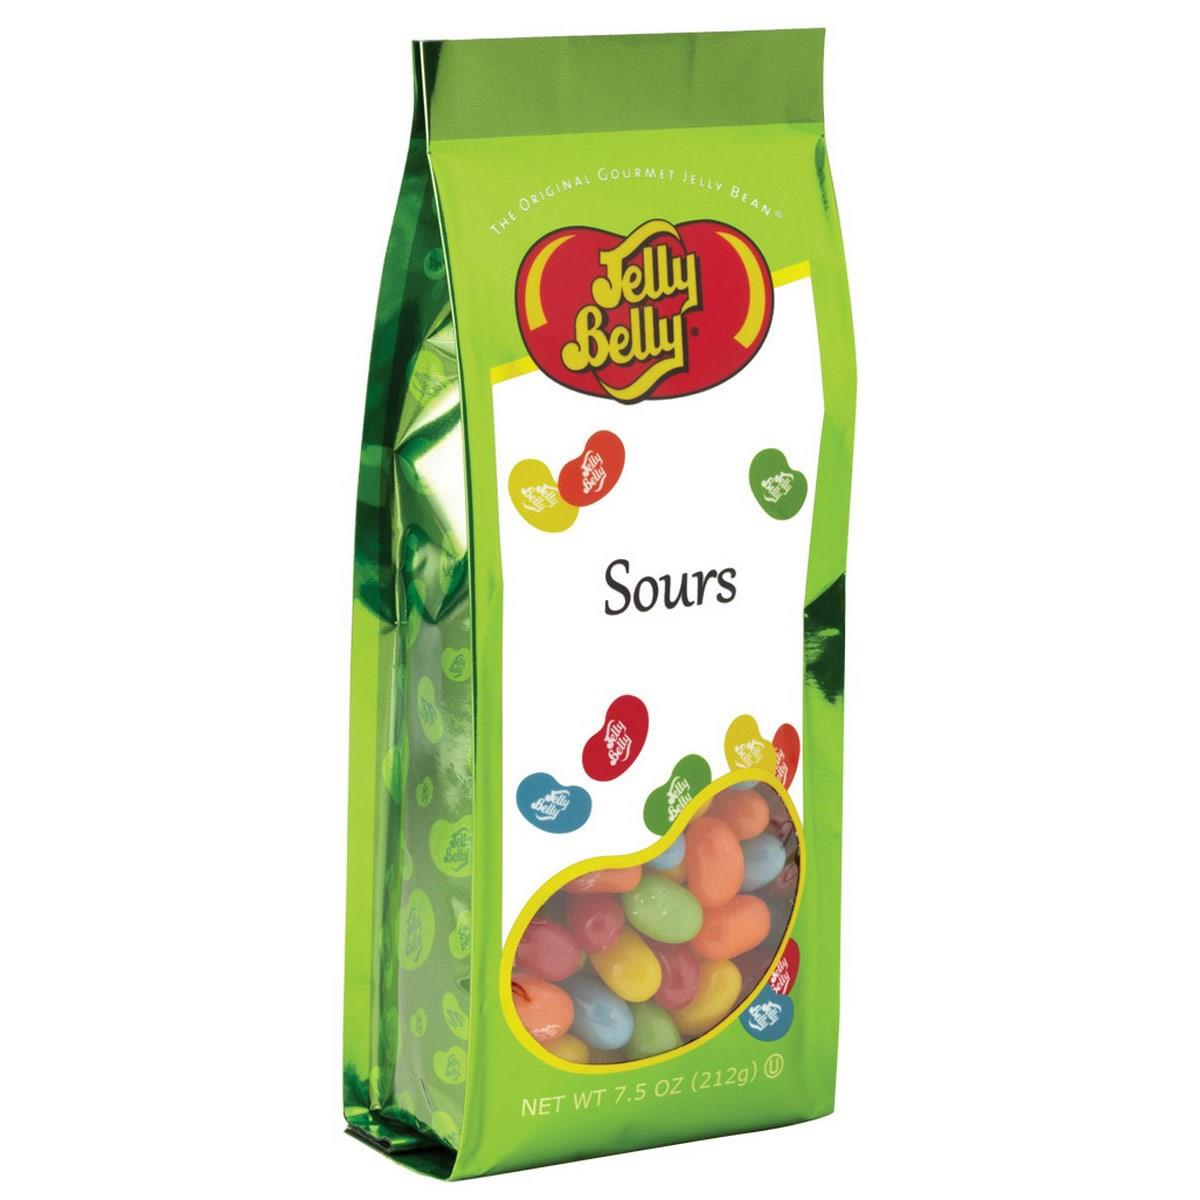 Jelly Belly Sours Jelly Beans - 7.5oz